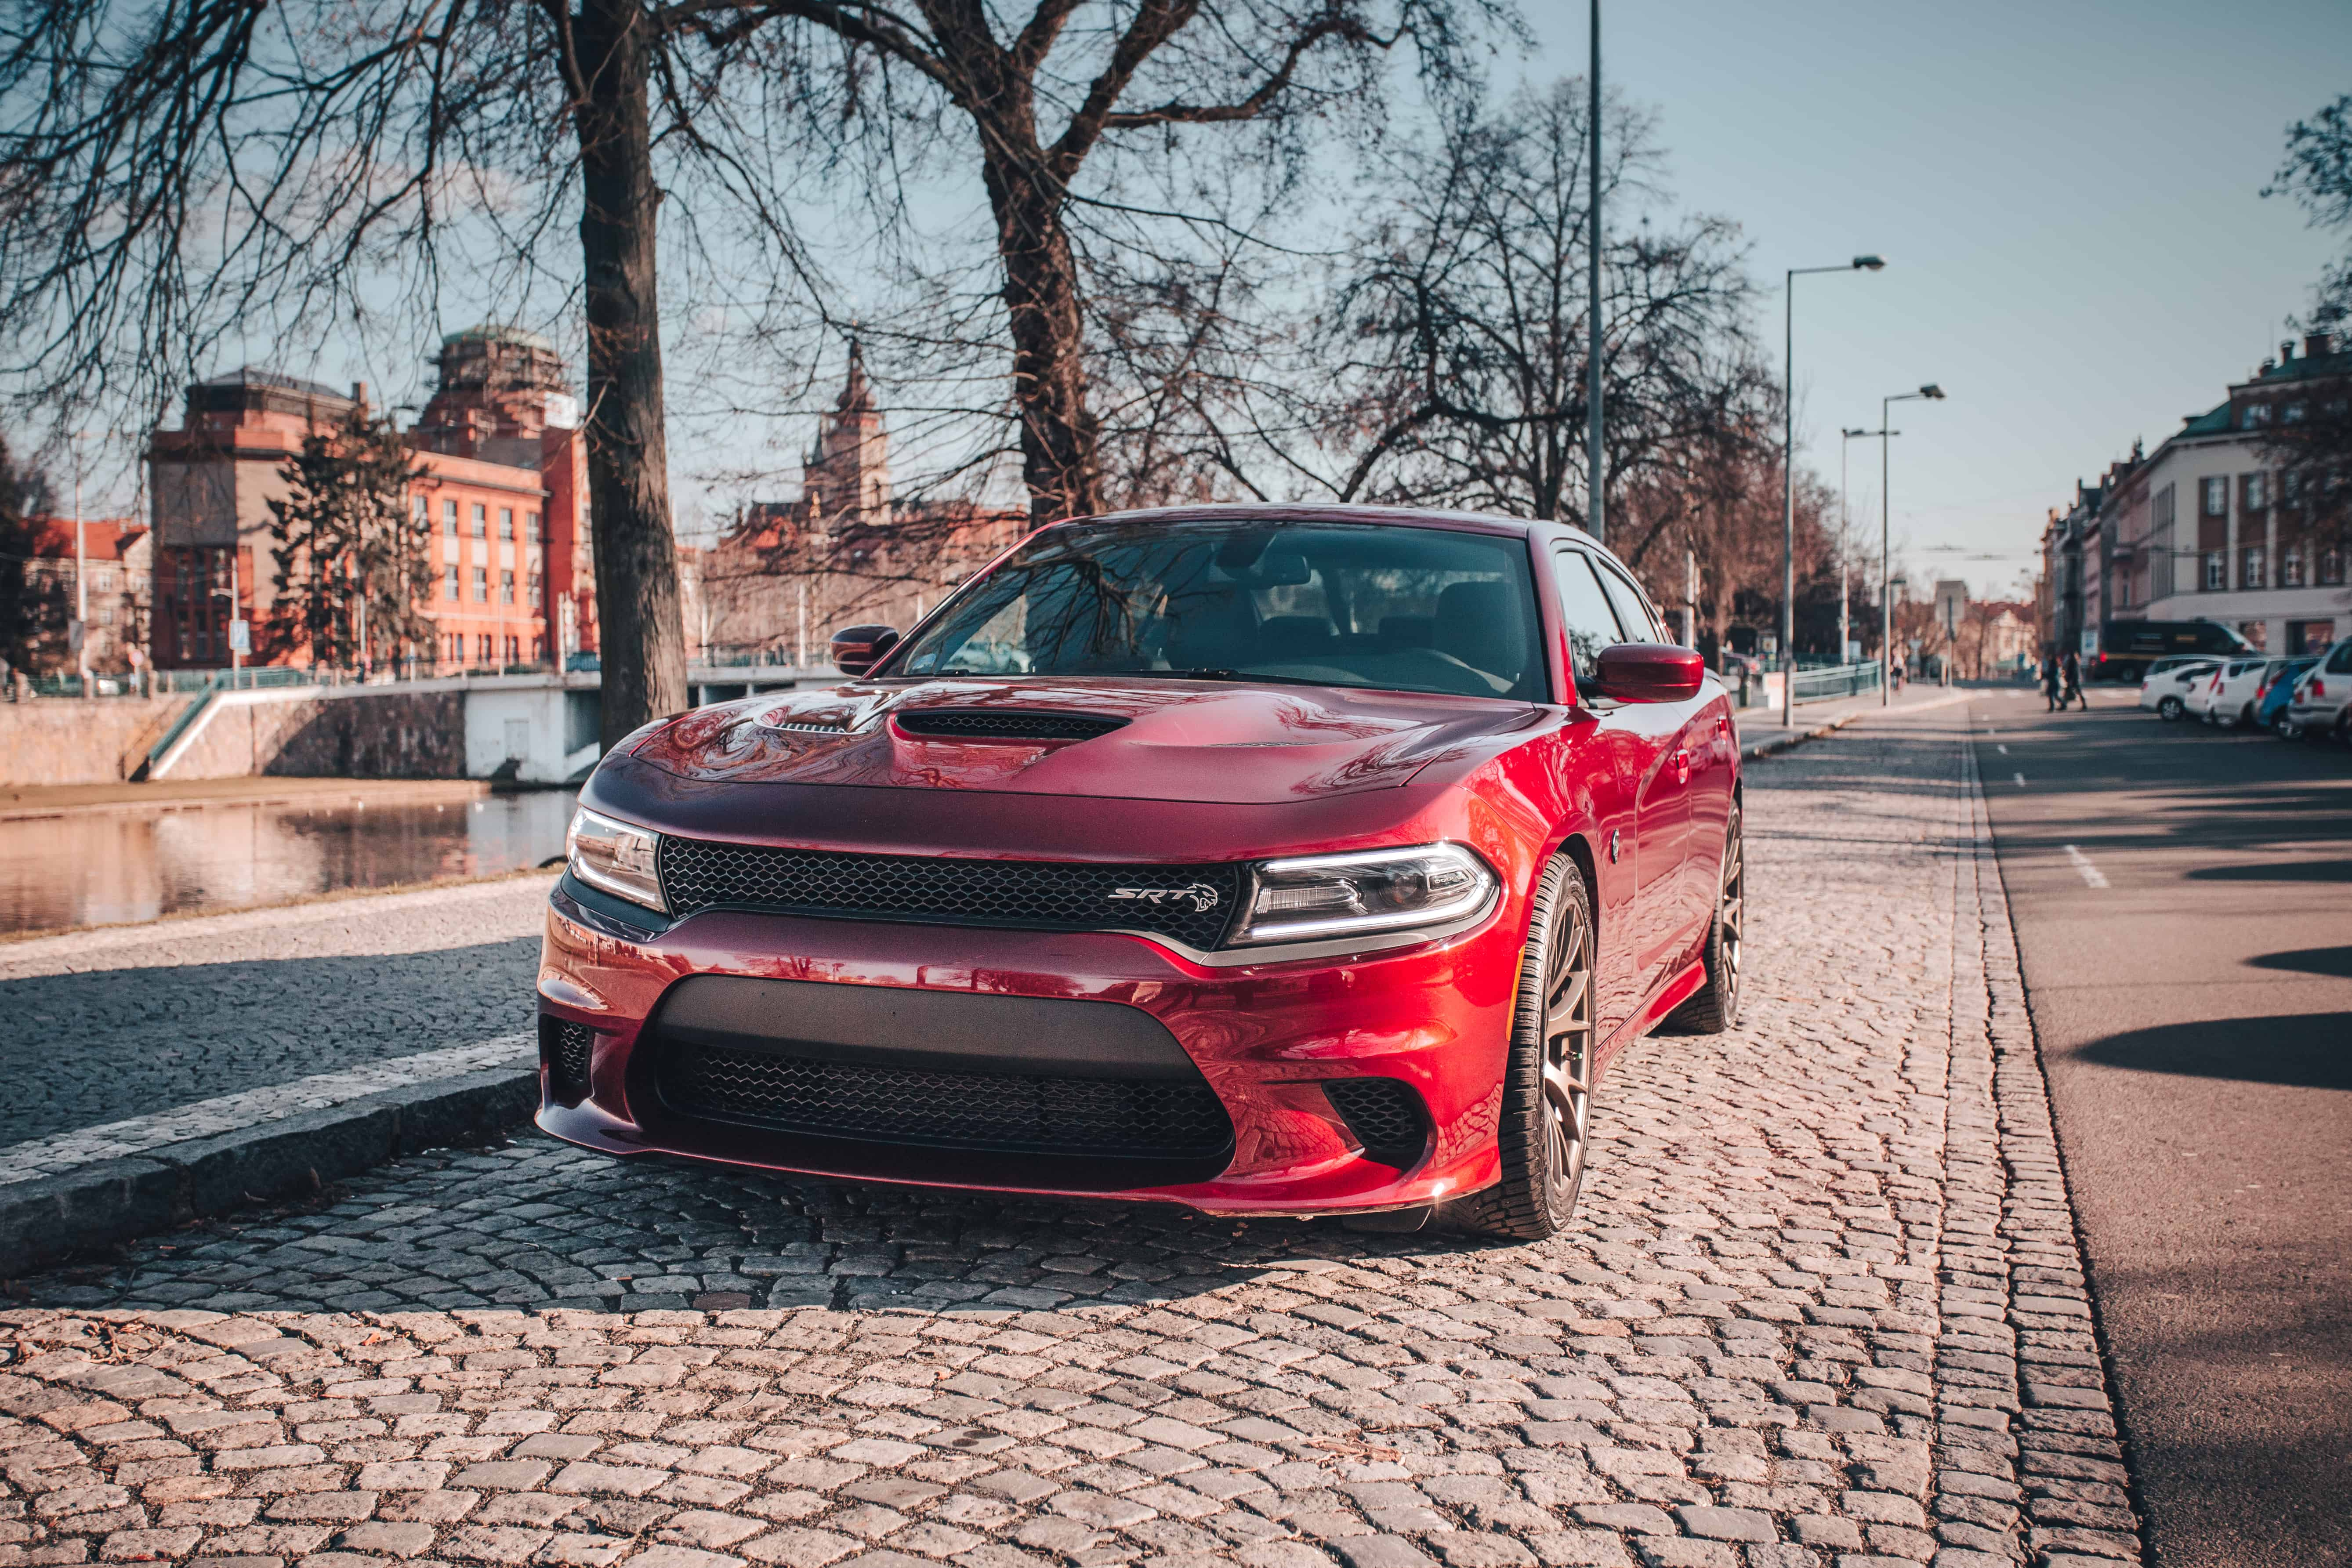 Chrysler Recalls 2019 Dodge Charger Vehicles With Missing Air Bag Information